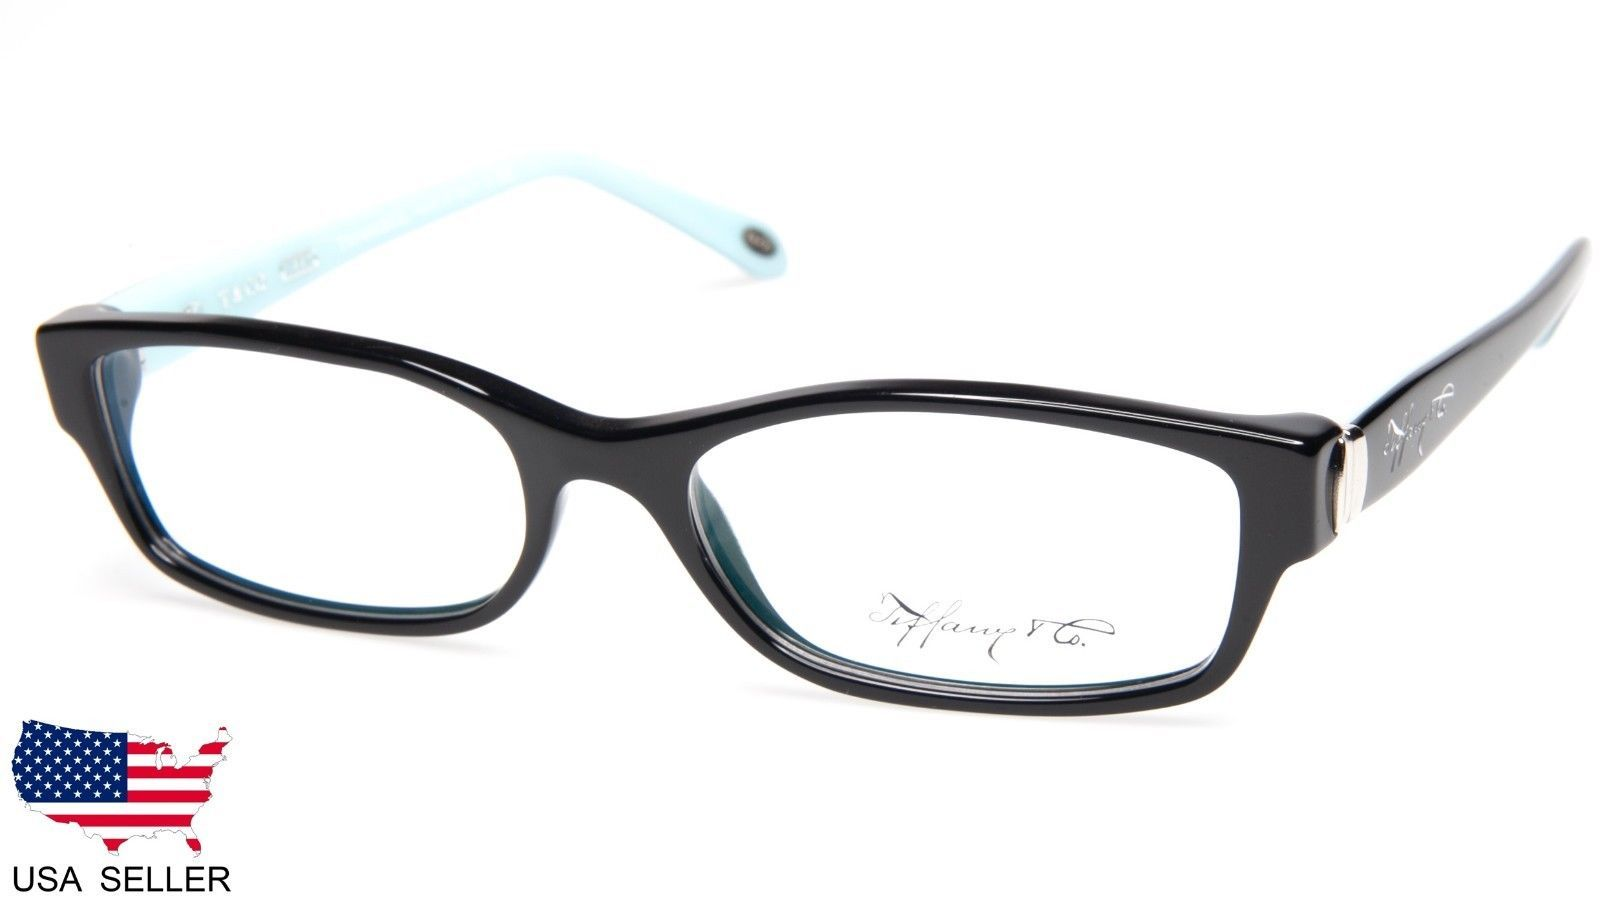 c937c64c9f New Tiffany   Co. Tf 2115 8001 Black and 34 similar items